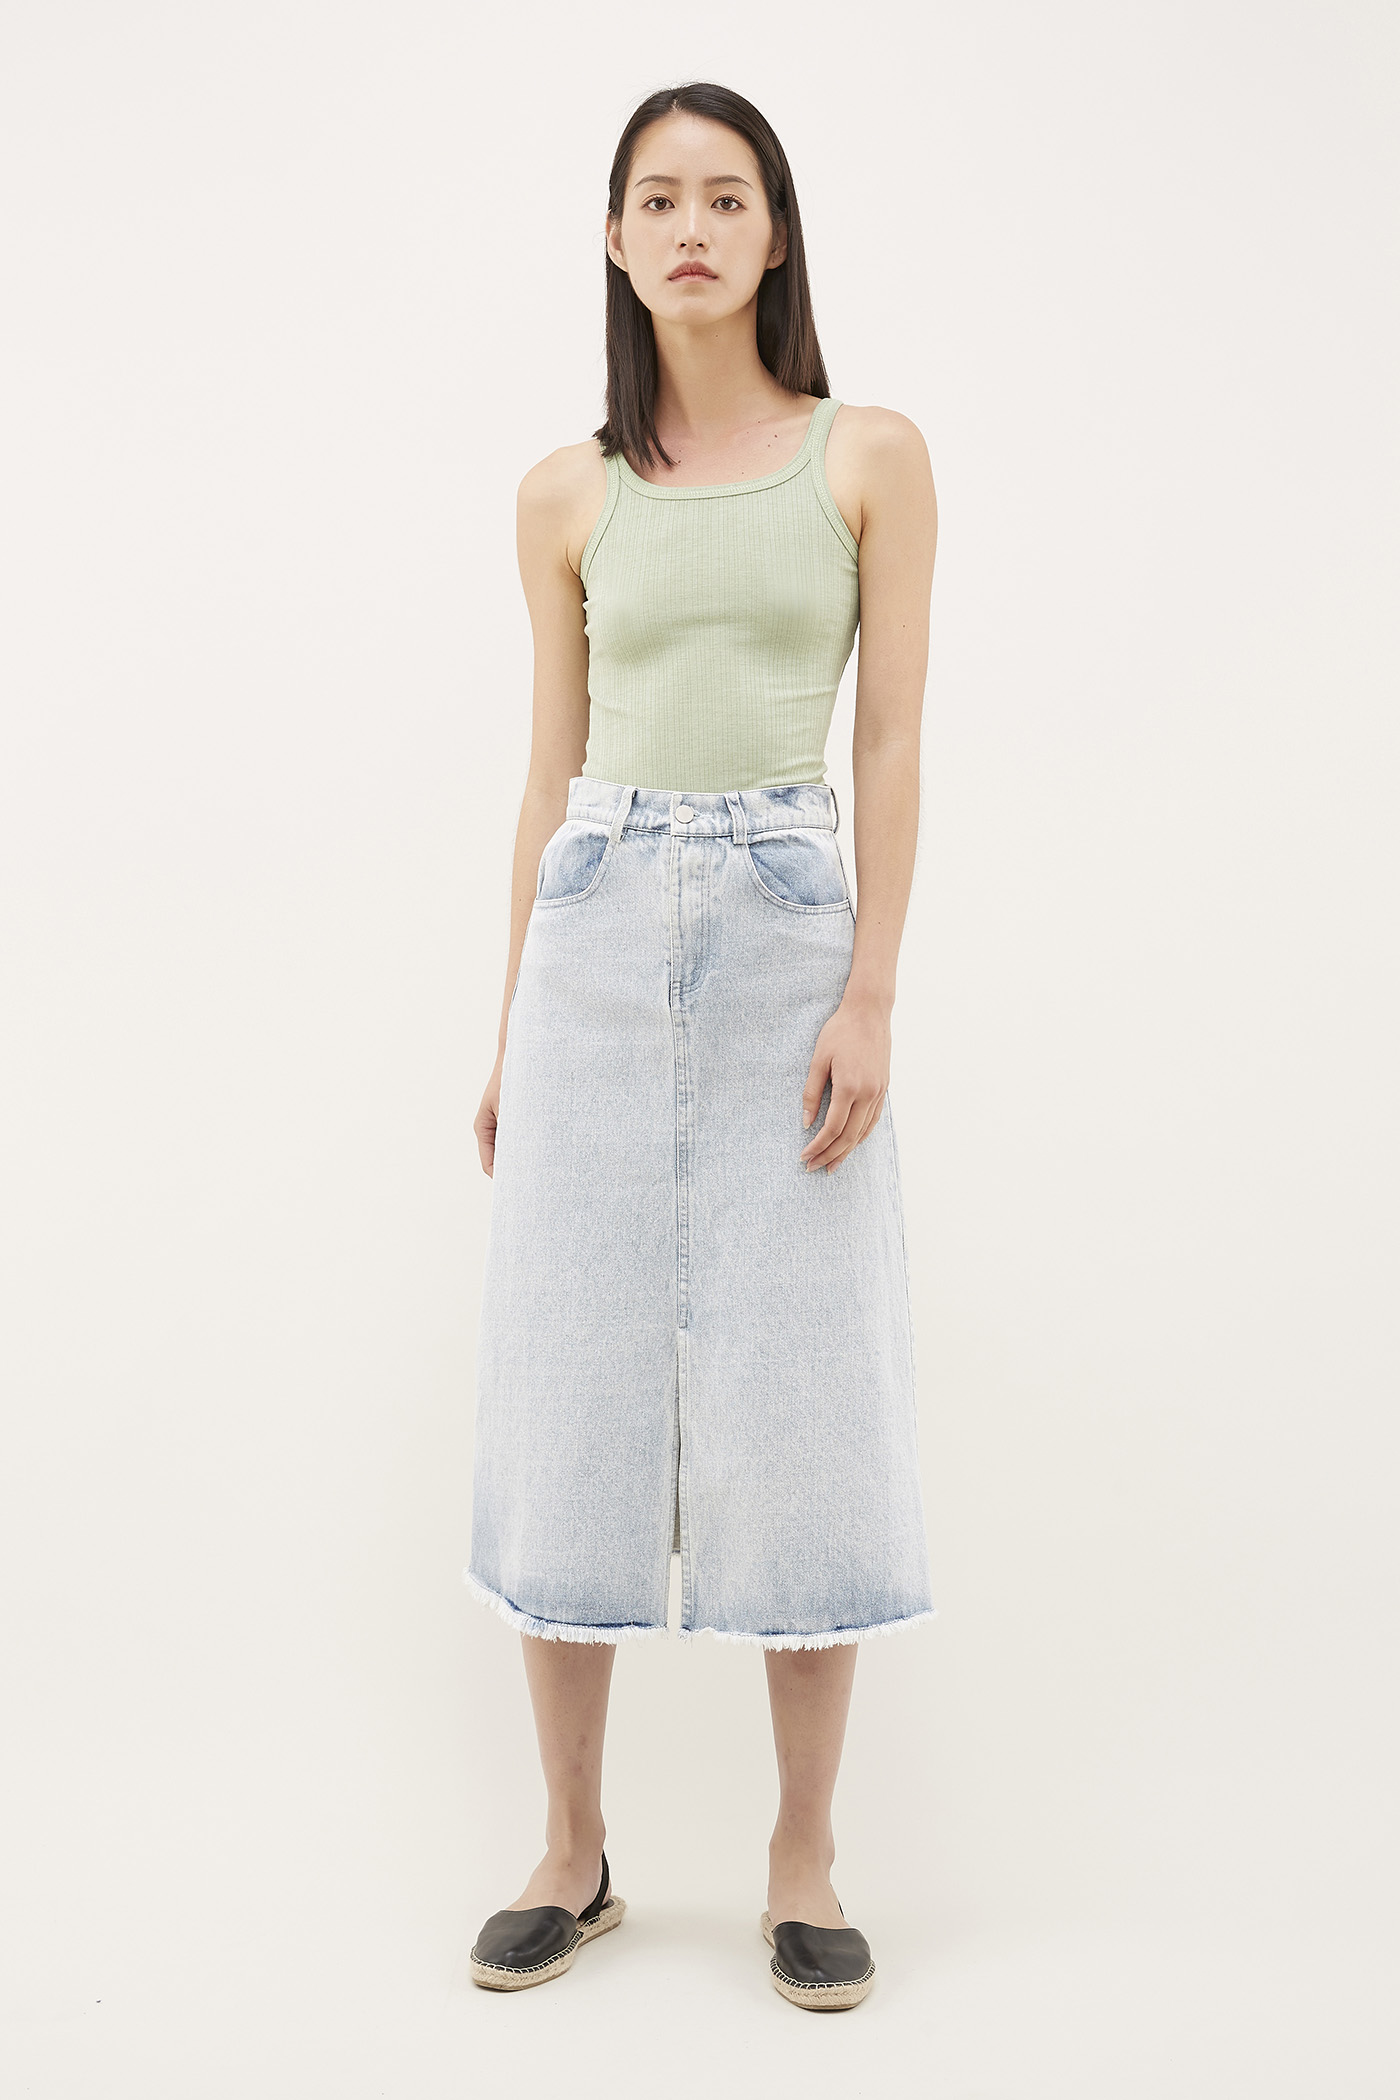 Adda Denim Skirt